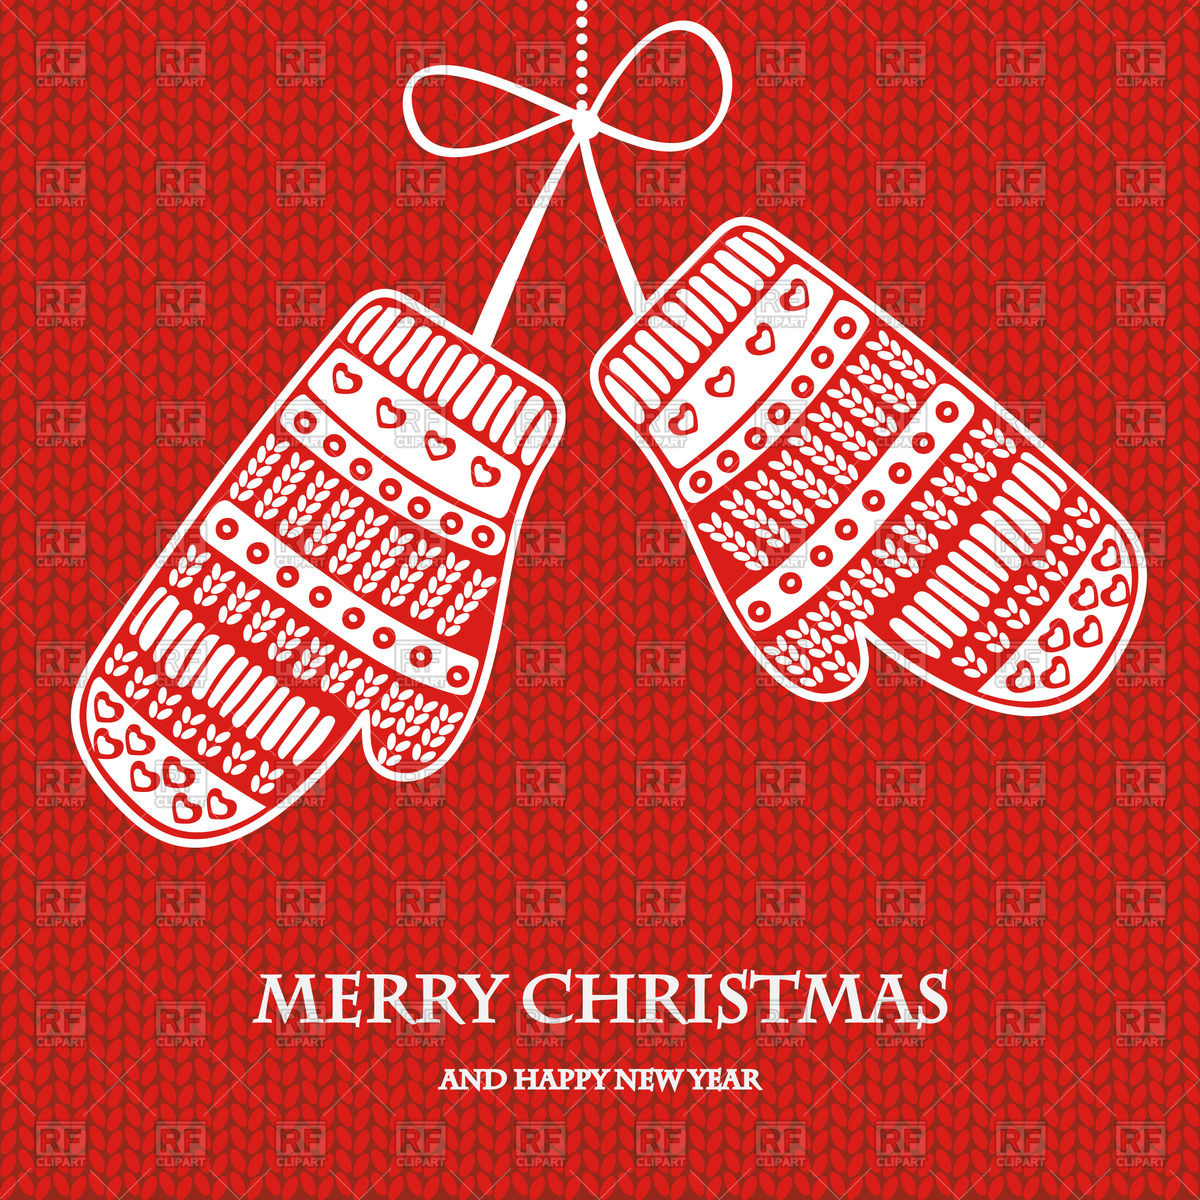 Christmas Card Wiht Mittens On Red Knitted Background Backgrounds